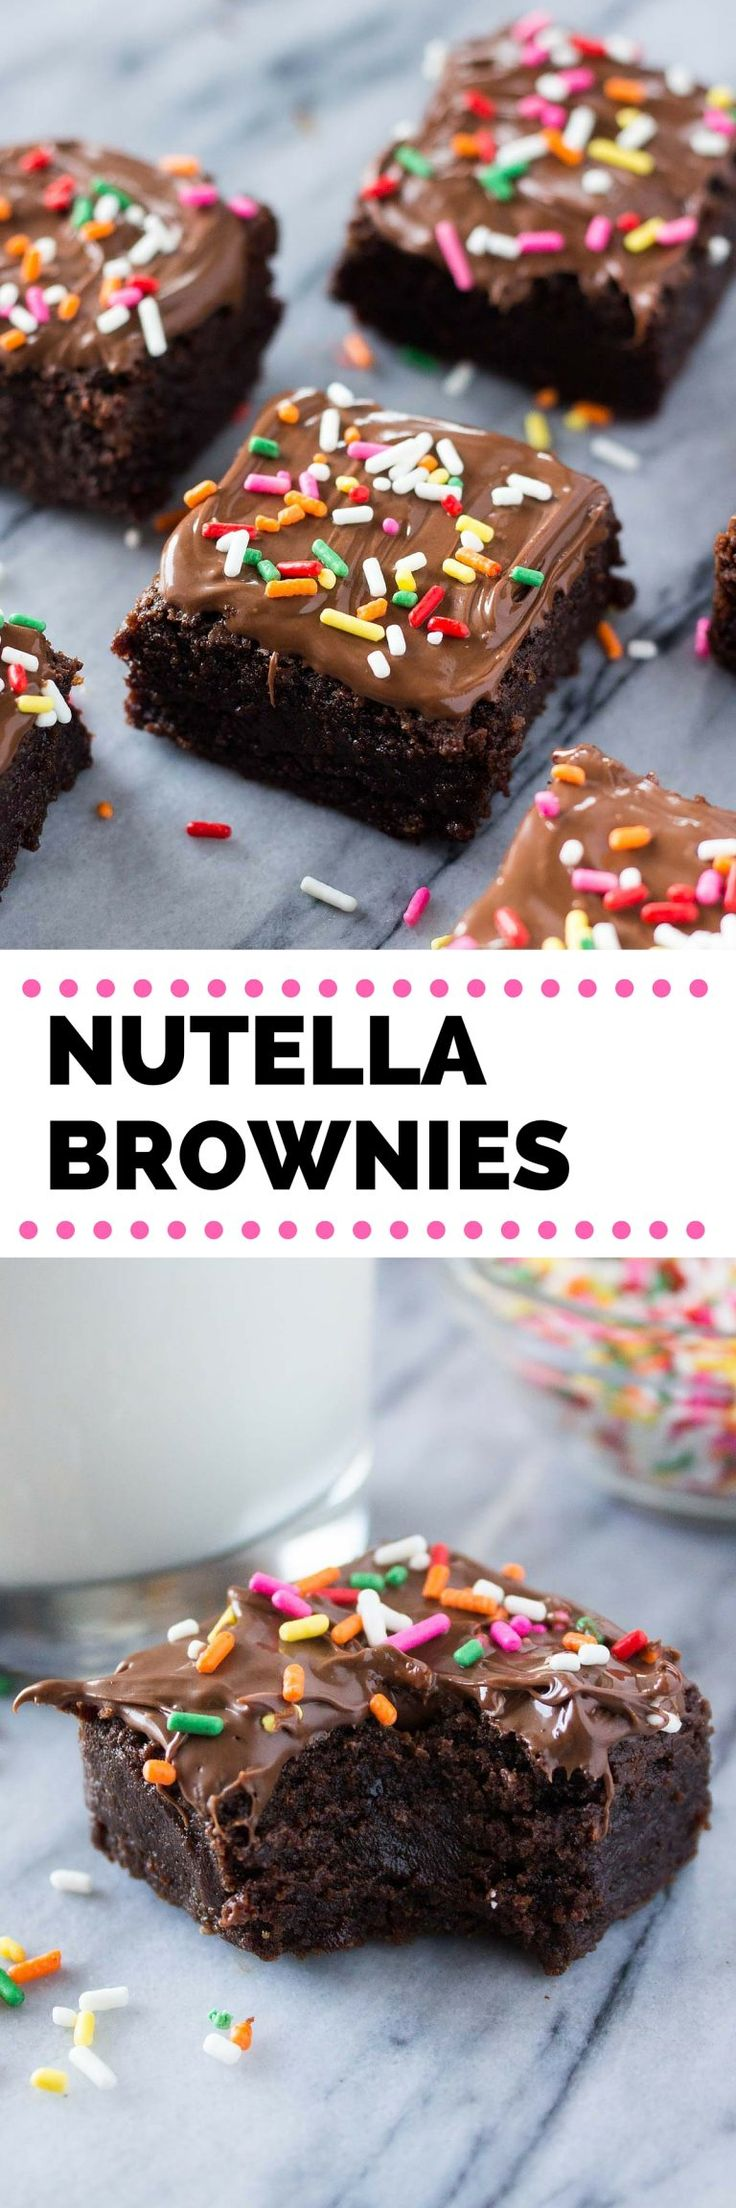 Super dense, ridiculously fudgy Nutella Brownies. Super easy, one bowl & no mixer required - you NEED to make these!